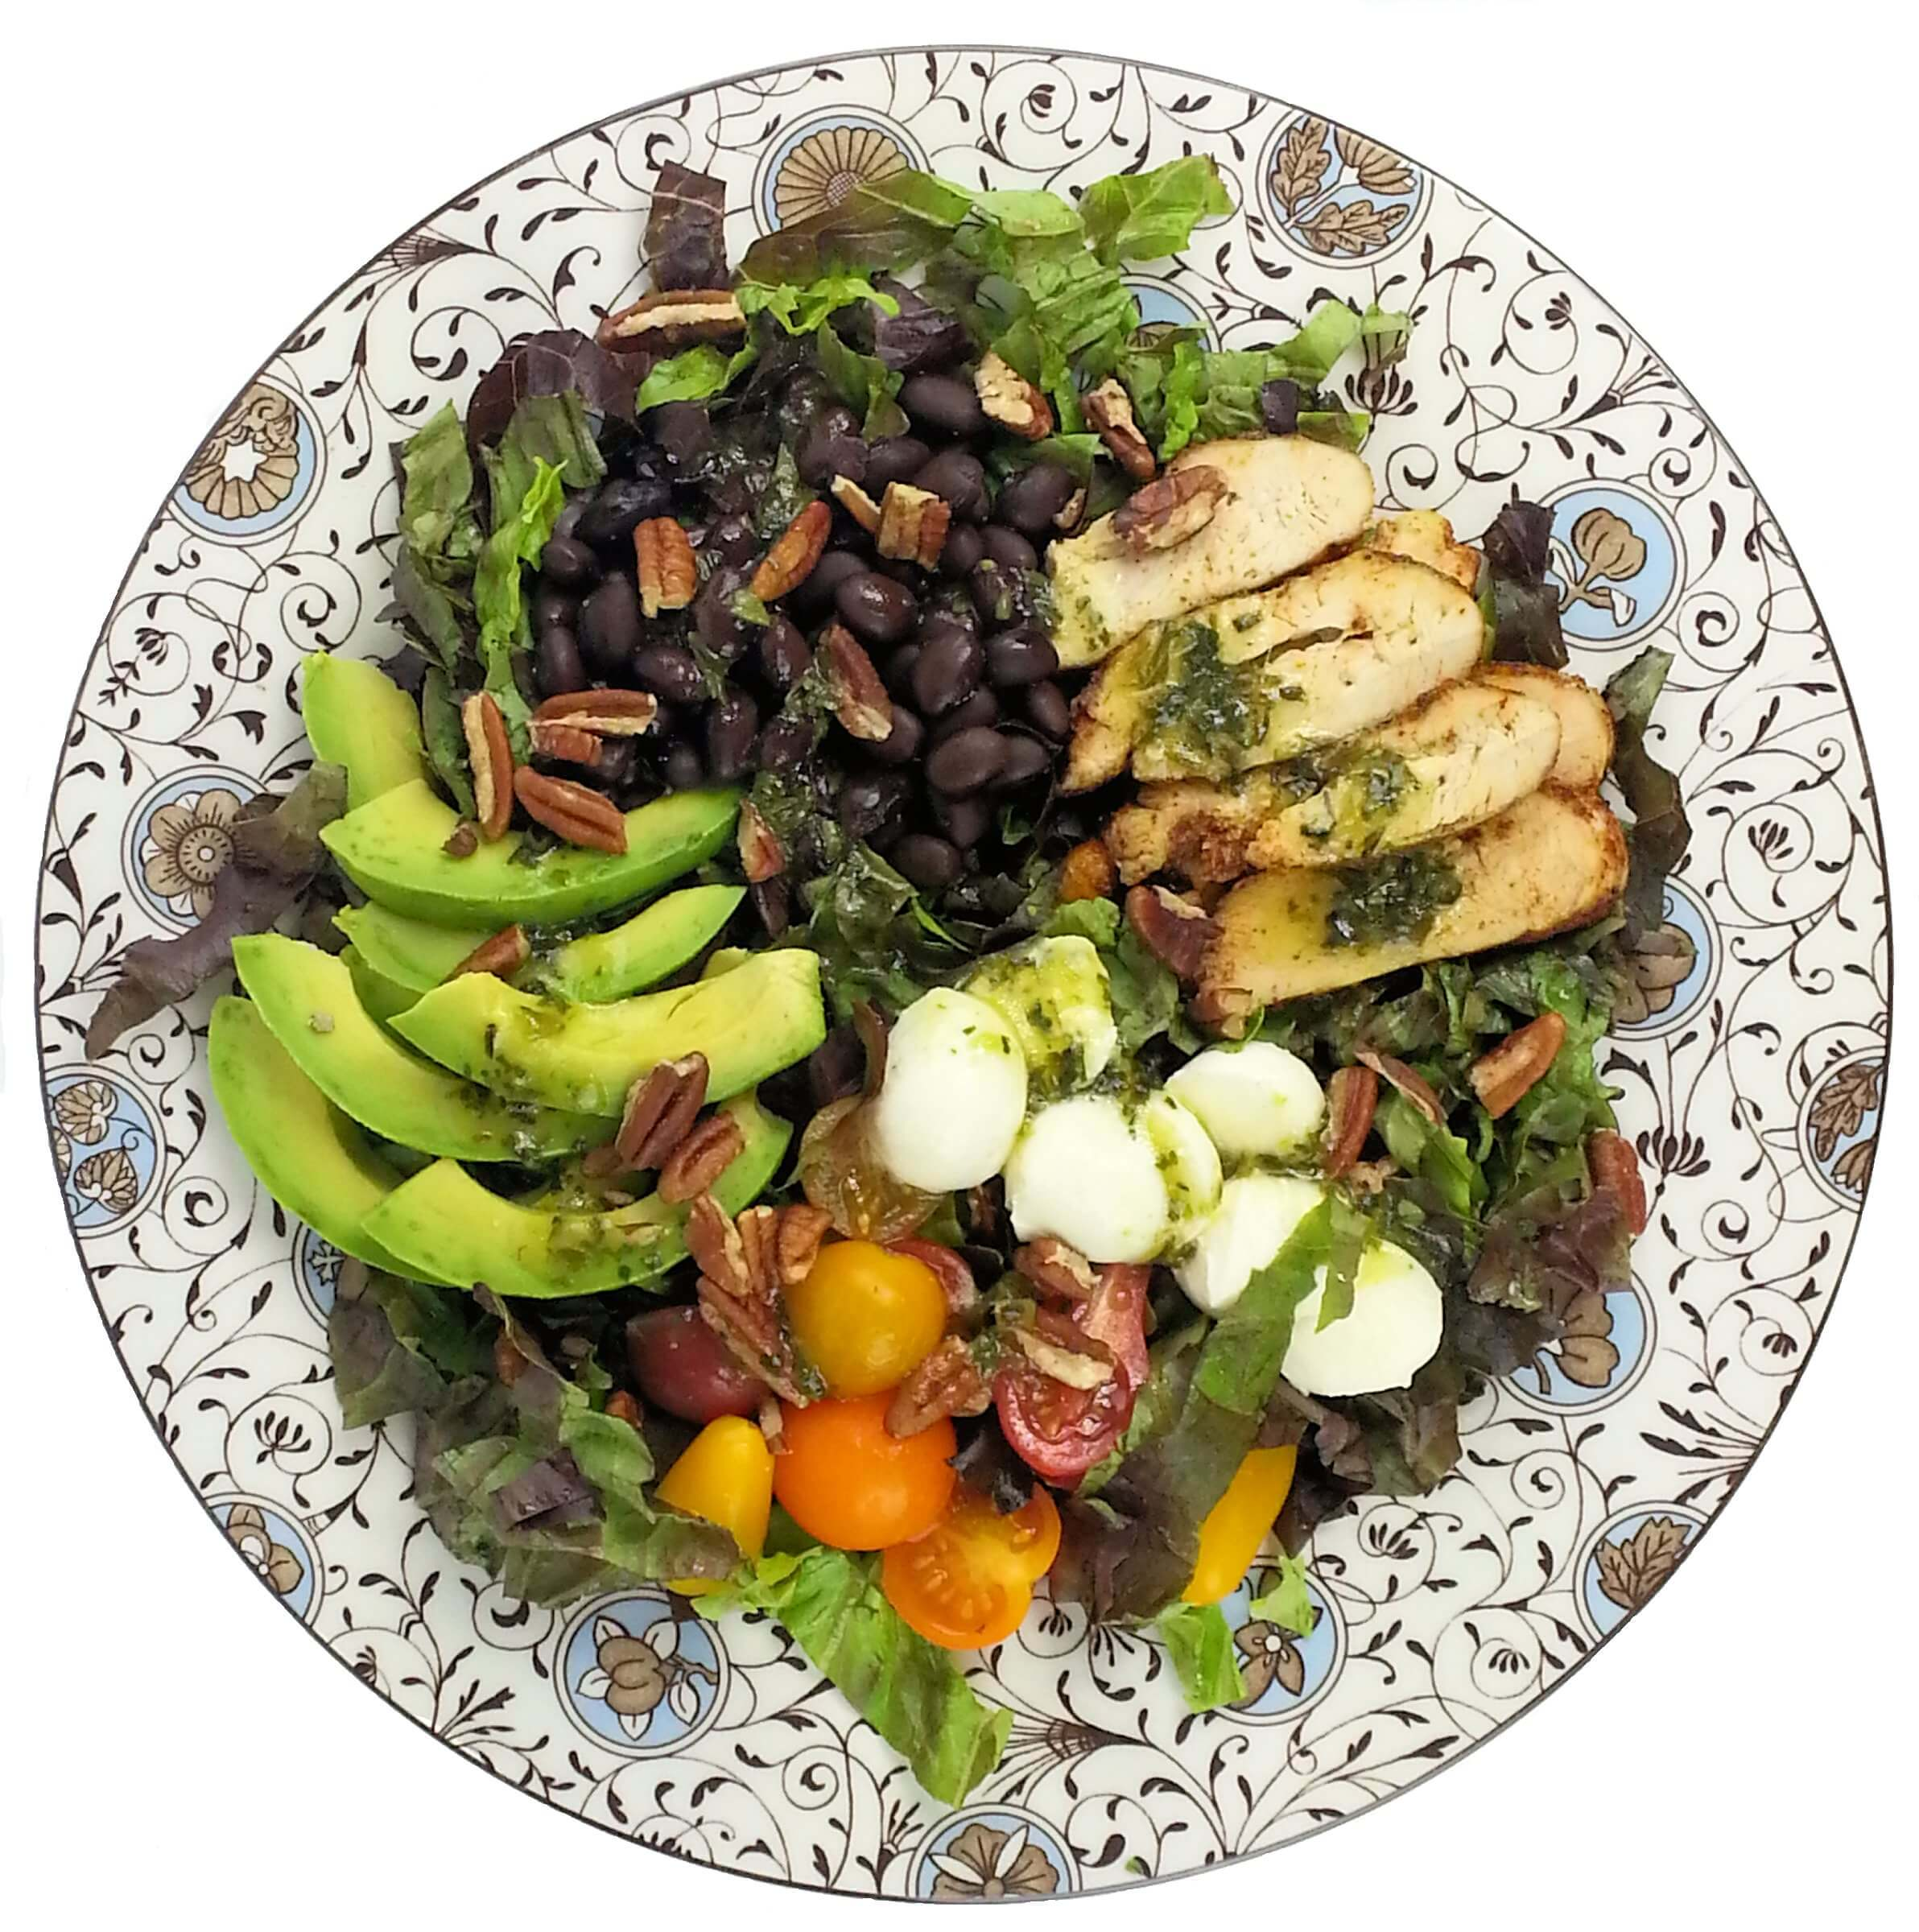 Top down picture of Southern Grilled Chicken Meal Salad